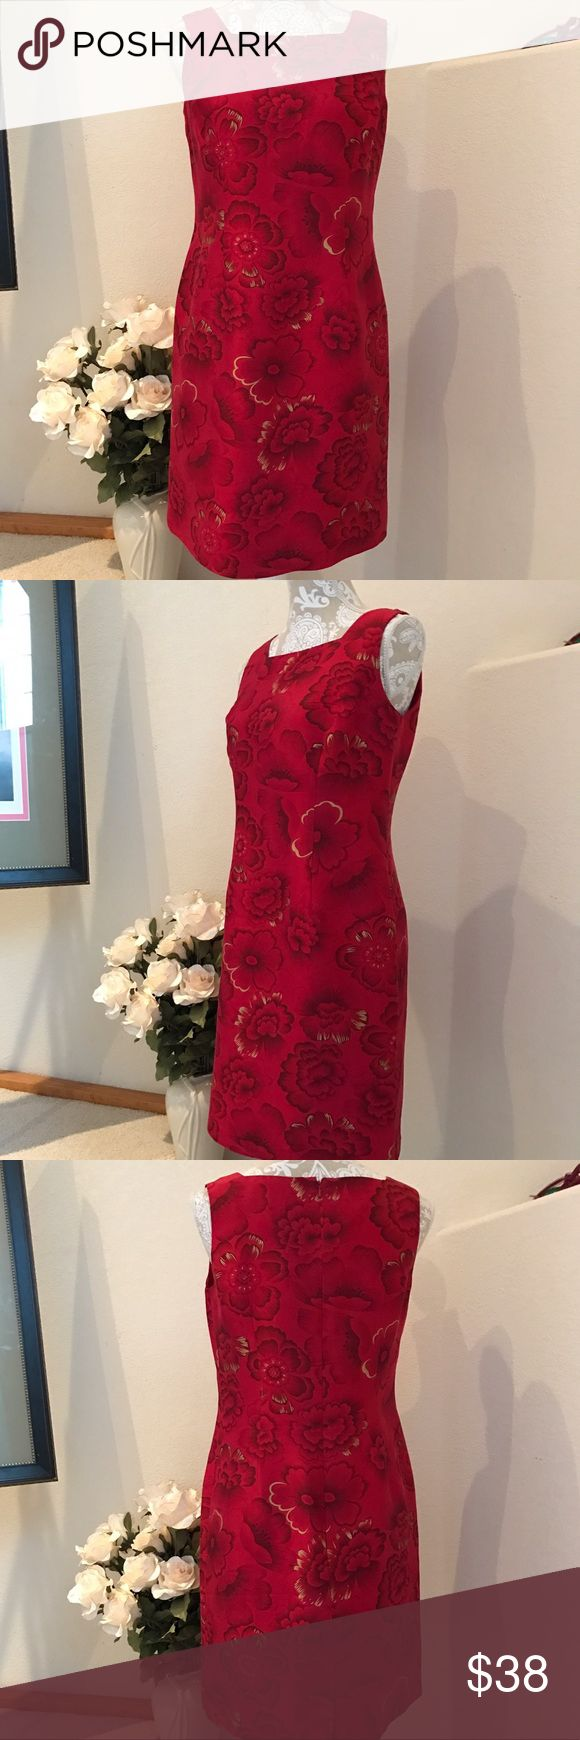 Beautiful Garnet Silk Dress so P 8 Oriental designed, gorgeous silk dress, like new. Fully lined. Size P8 by Cold water Creek Coldwater Creek Dresses Midi